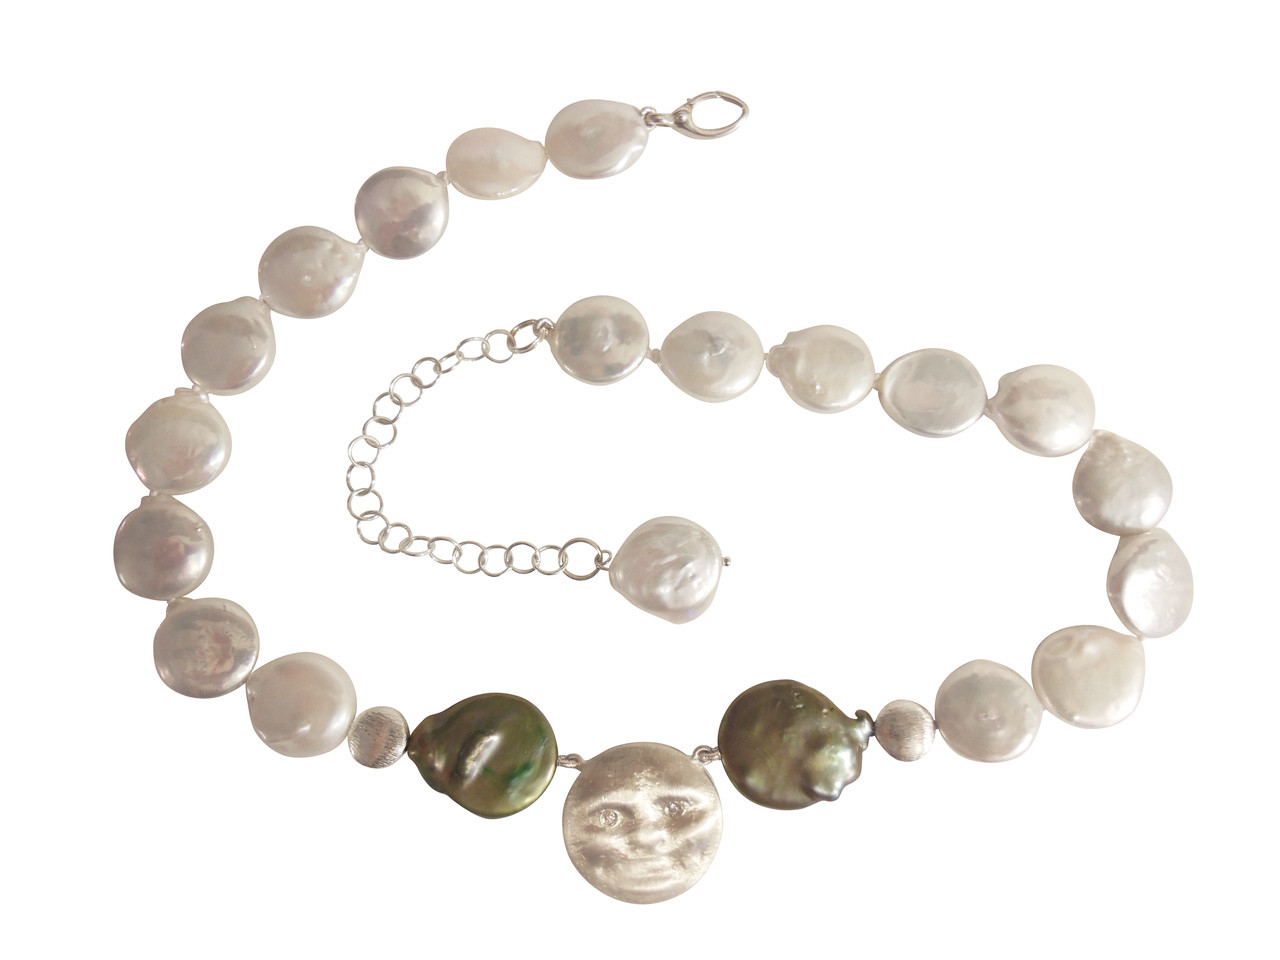 Sterling Silver Face, Diamond Eyes on coin pearl necklace: small